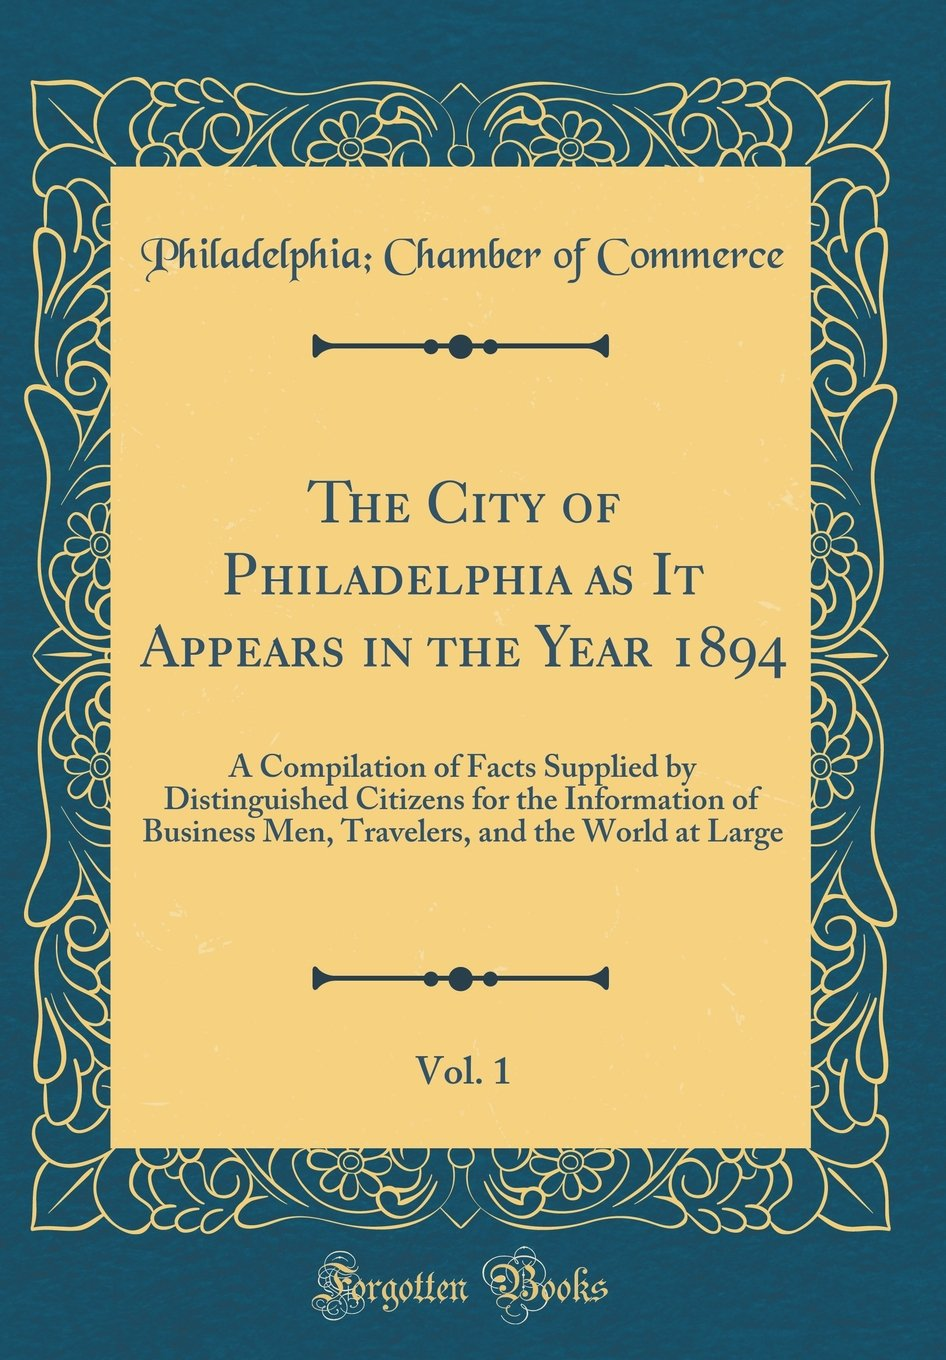 The City of Philadelphia as It Appears in the Year 1894, Vol. 1: A Compilation of Facts Supplied by Distinguished Citizens for the Information of ... and the World at Large (Classic Reprint) pdf epub